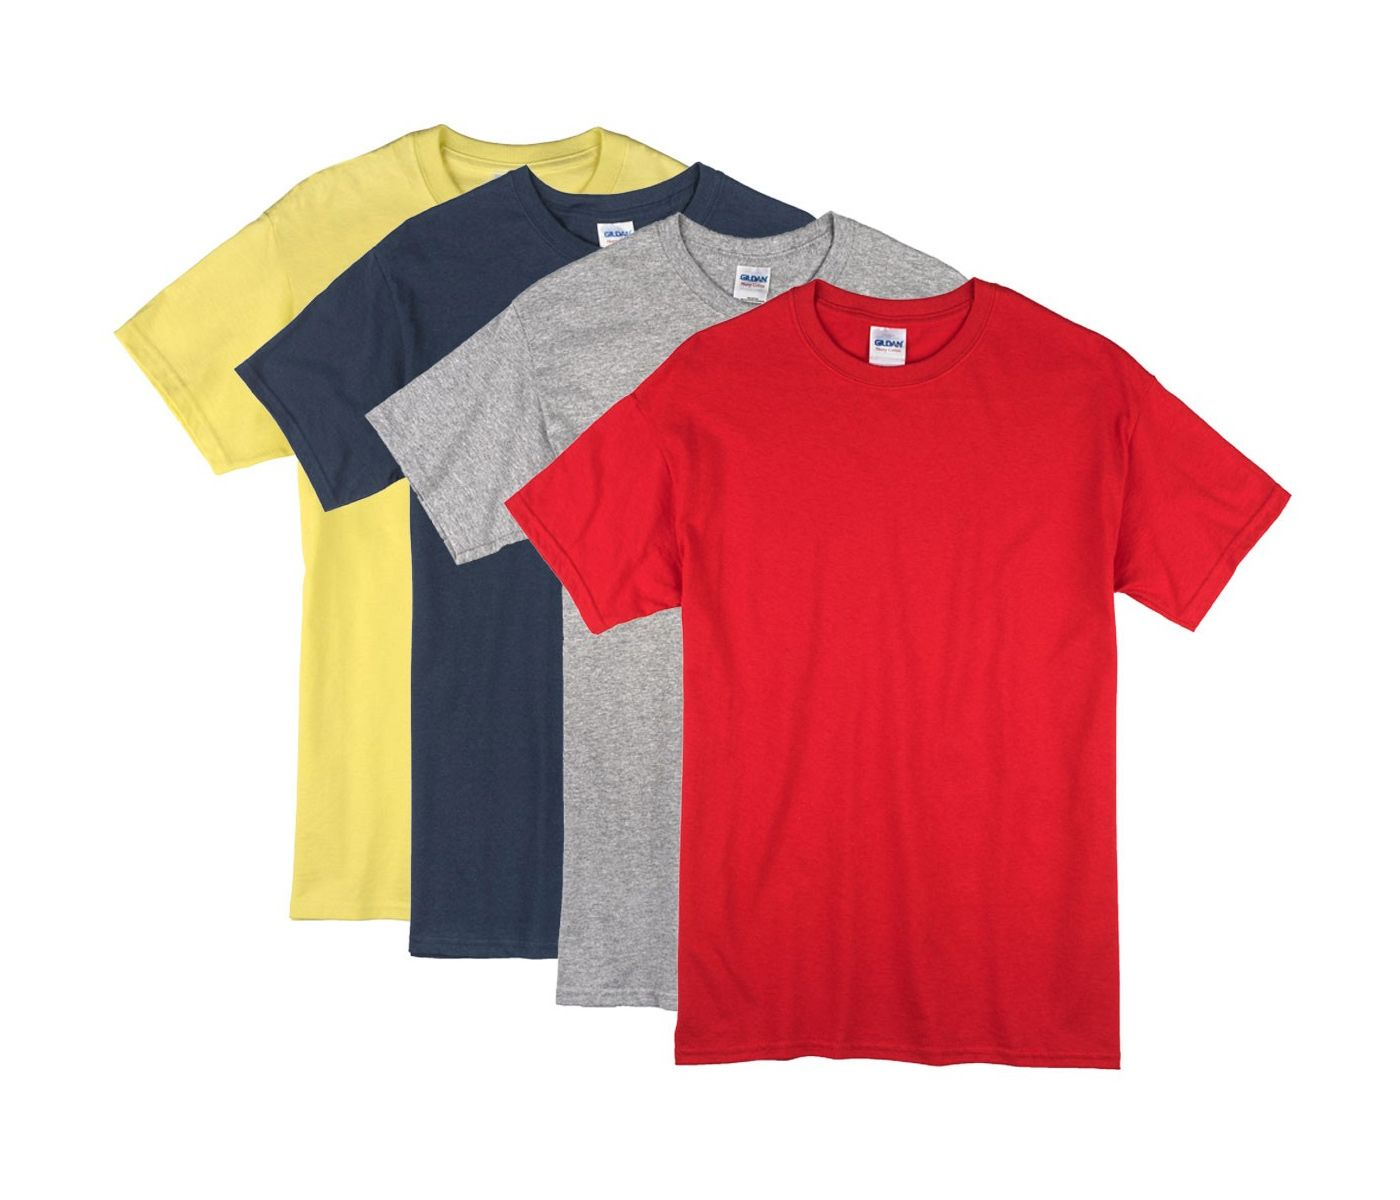 wholesale t shirts bulk supplier